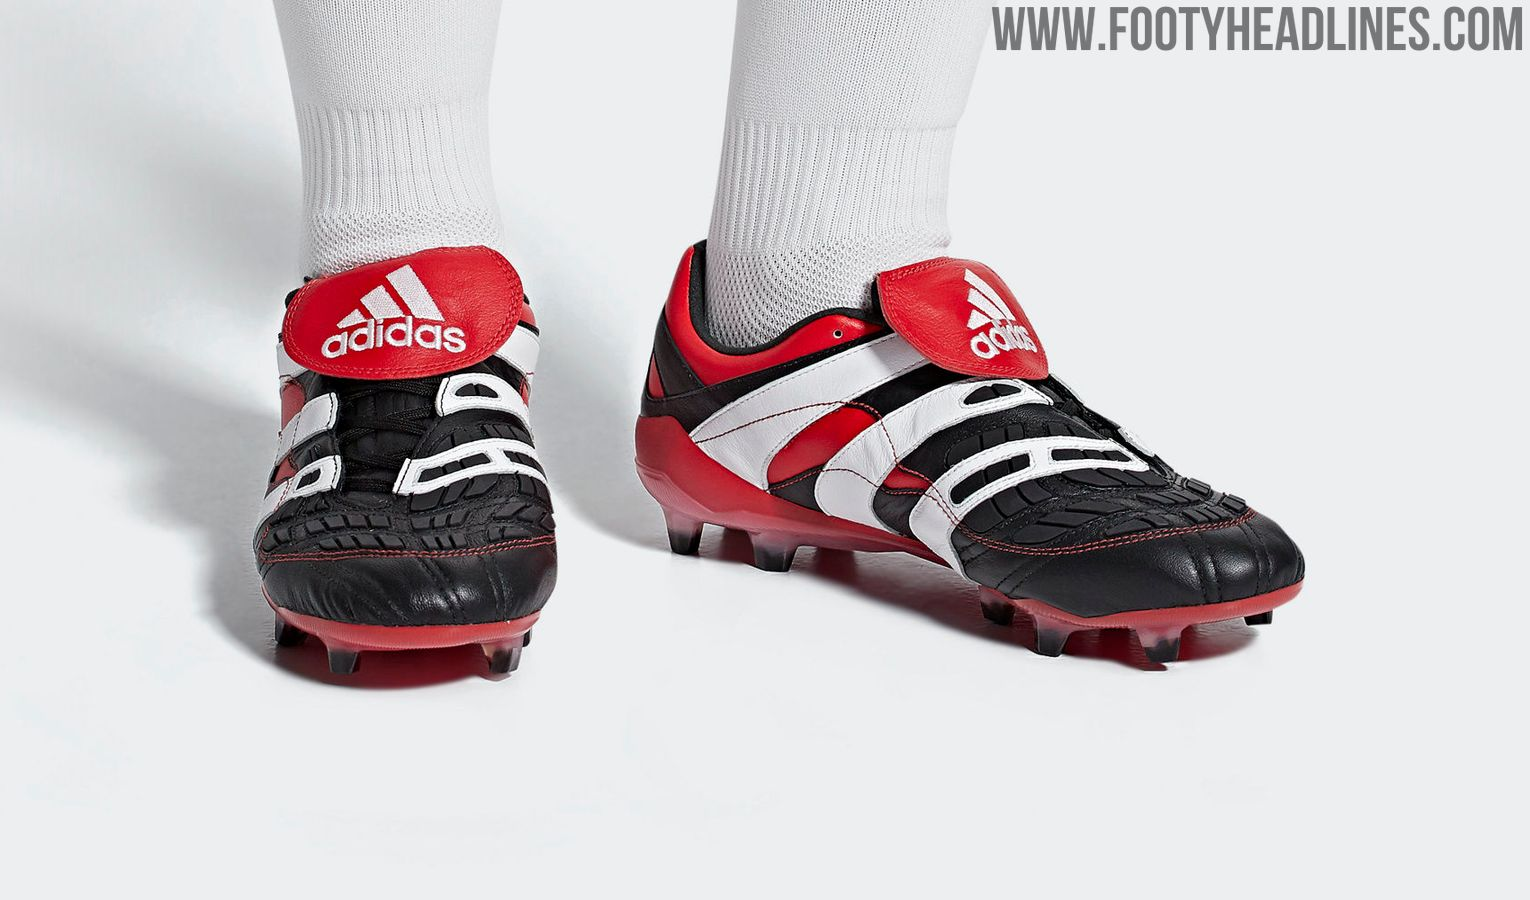 e80e3f6d4c94 Are you happy to see the Adidas Predator Accelerator return in this more  traditional look  Comment below